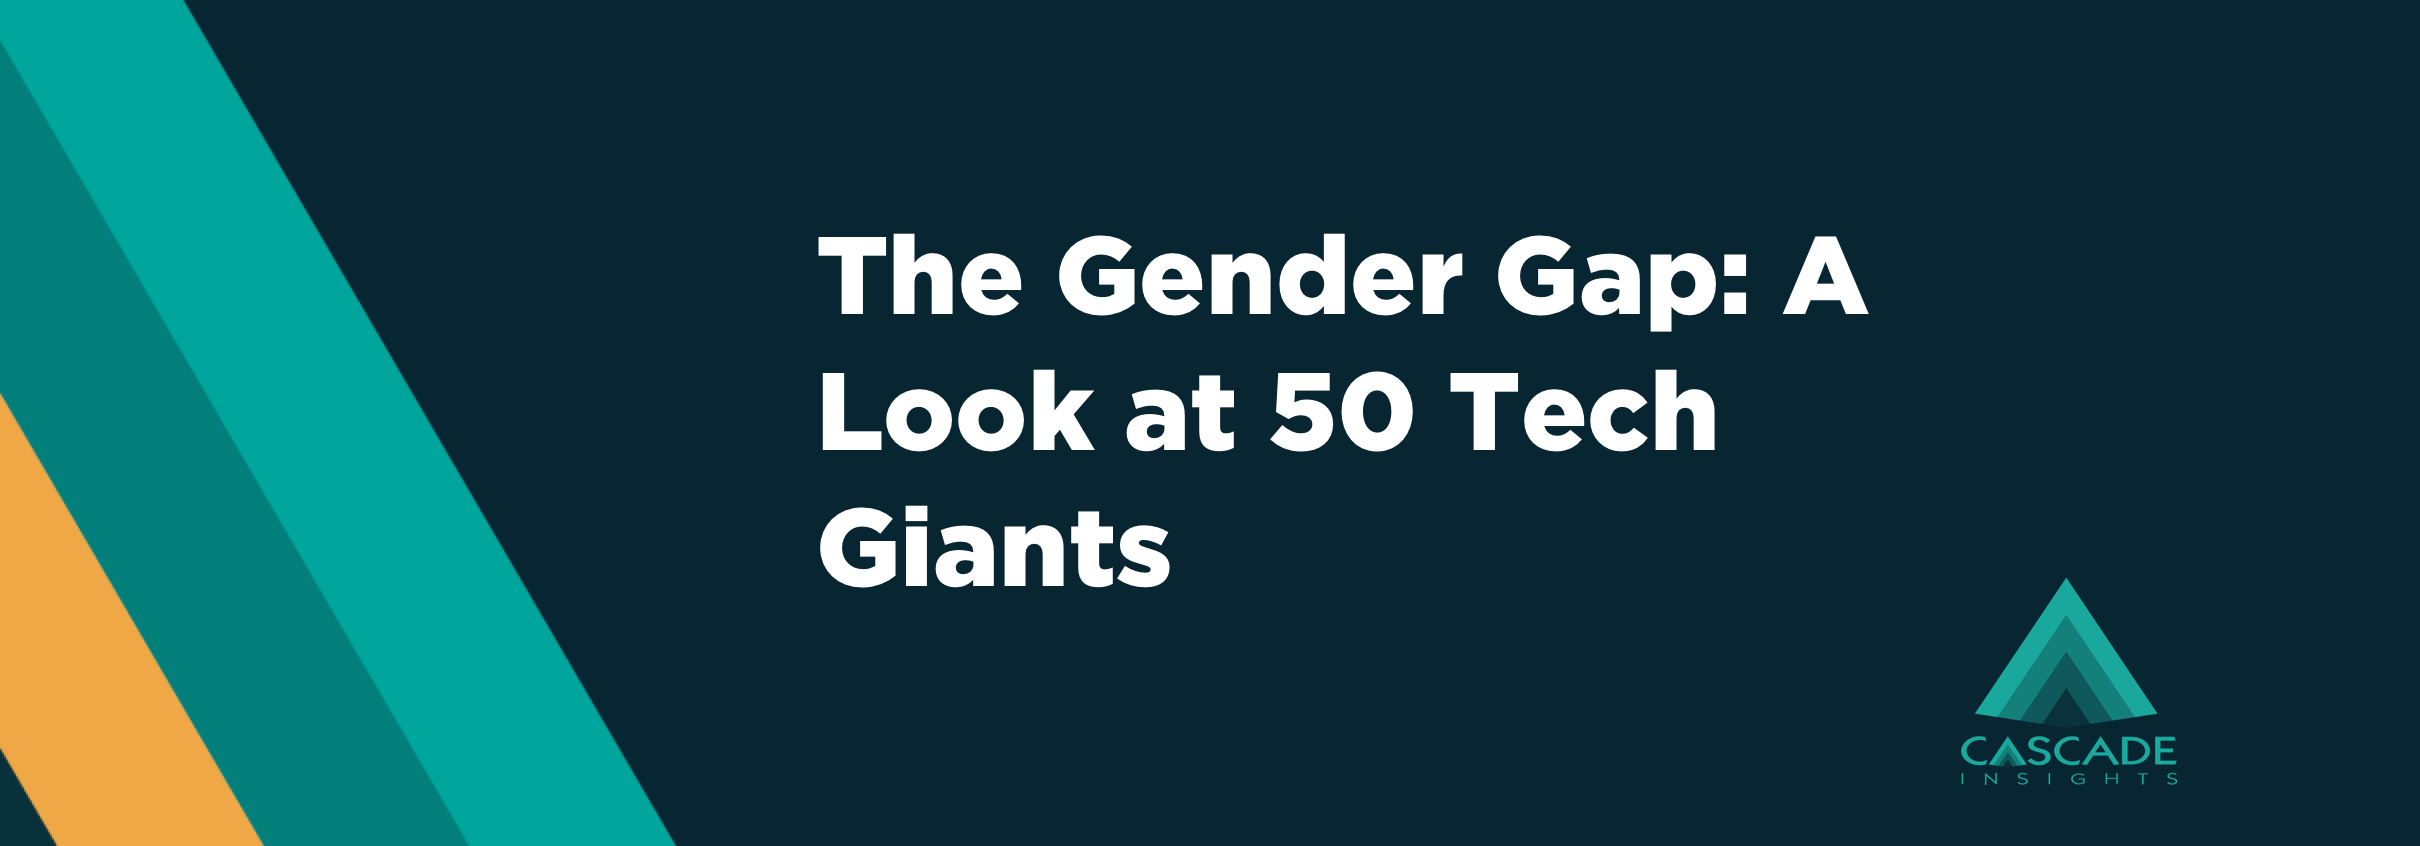 What LinkedIn ad data reveals about the tech gender gap.